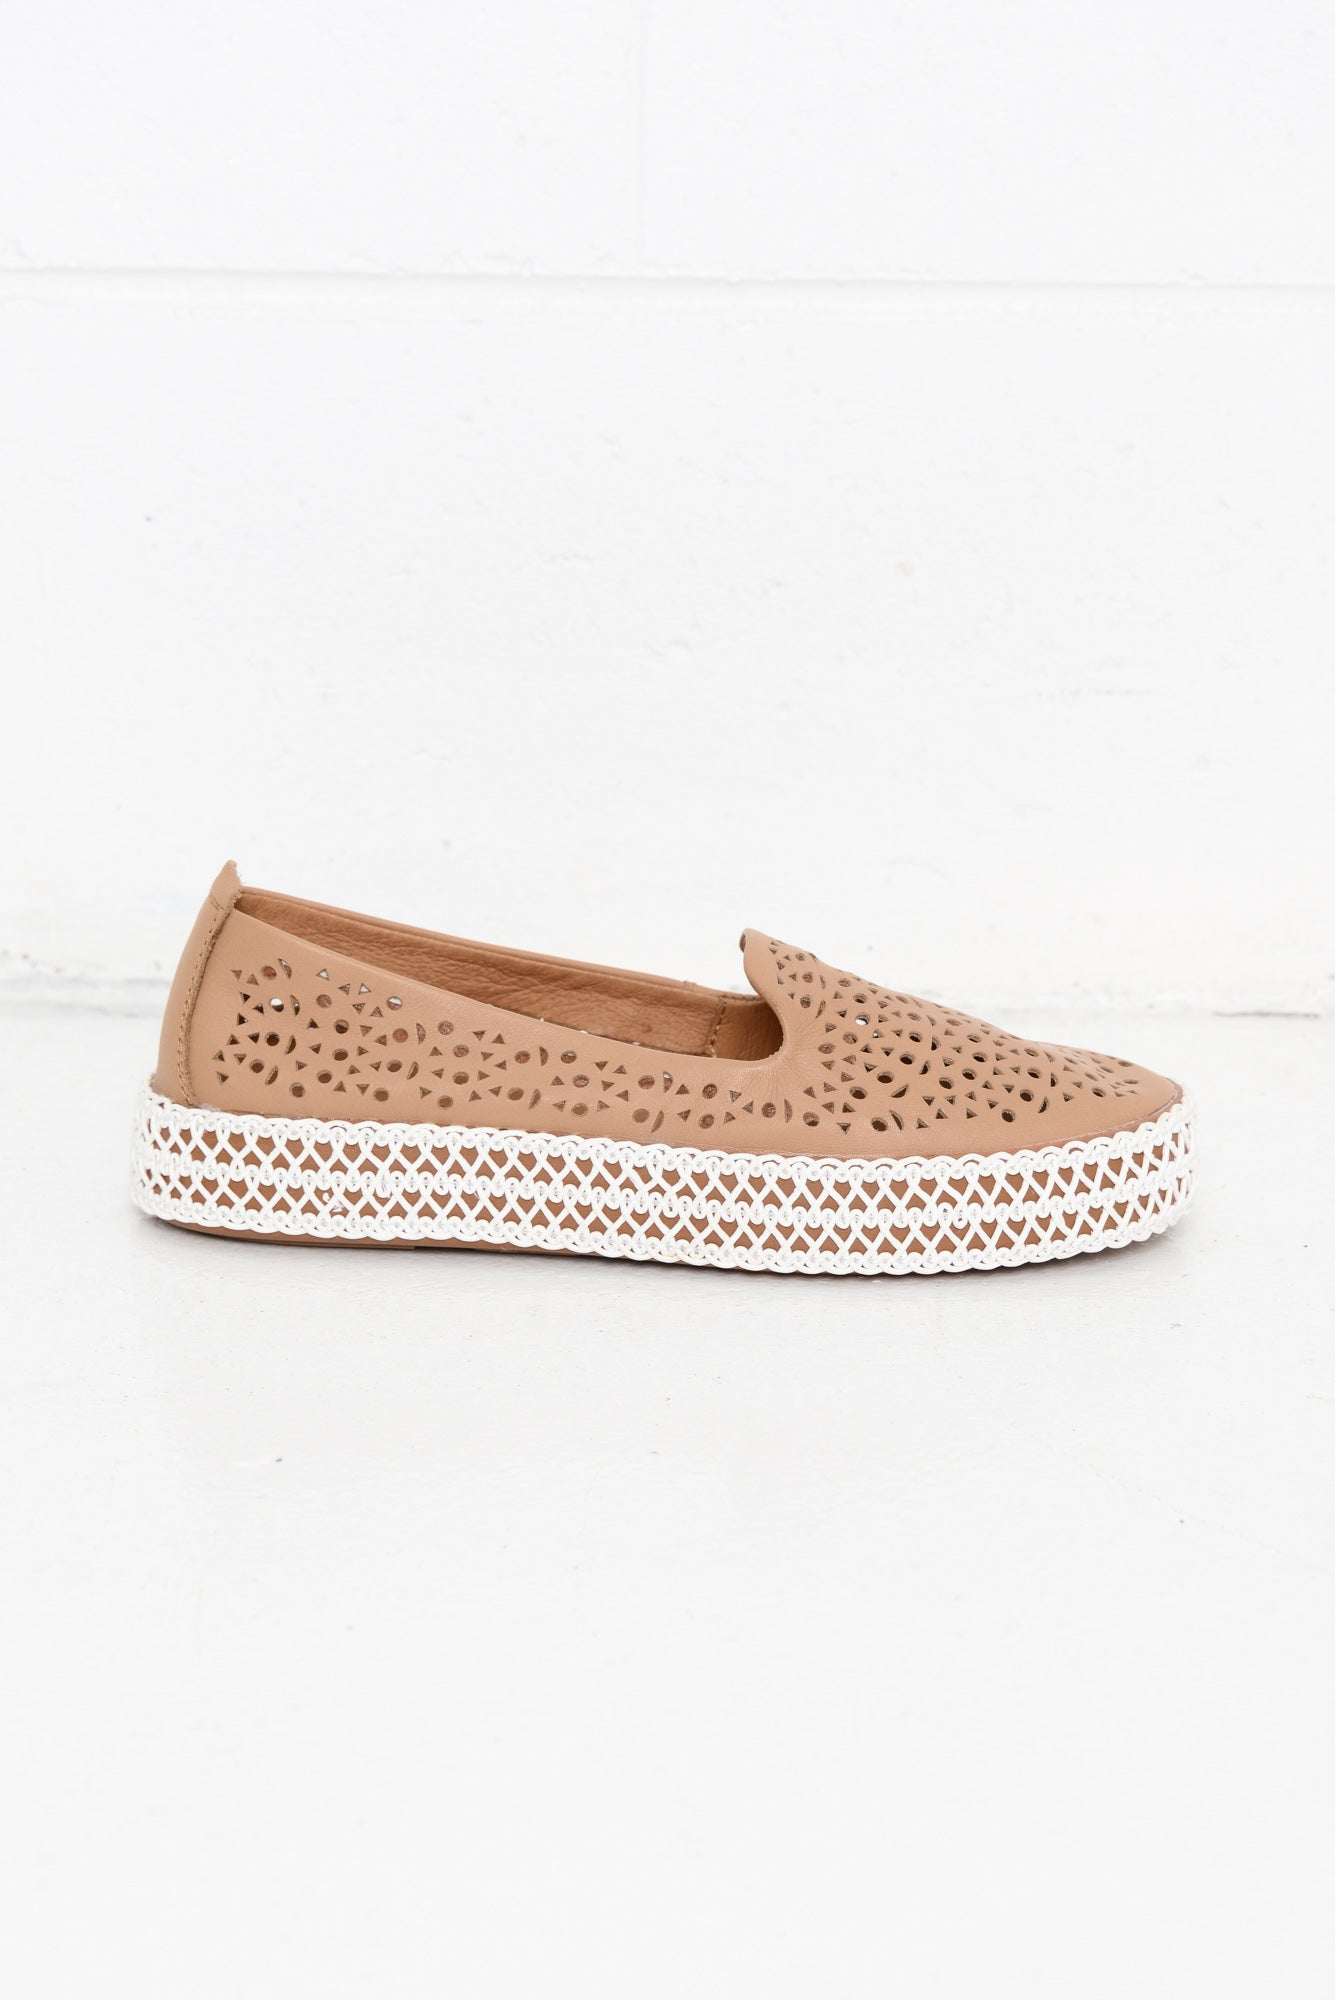 Pisces Camel Platform Leather Shoe